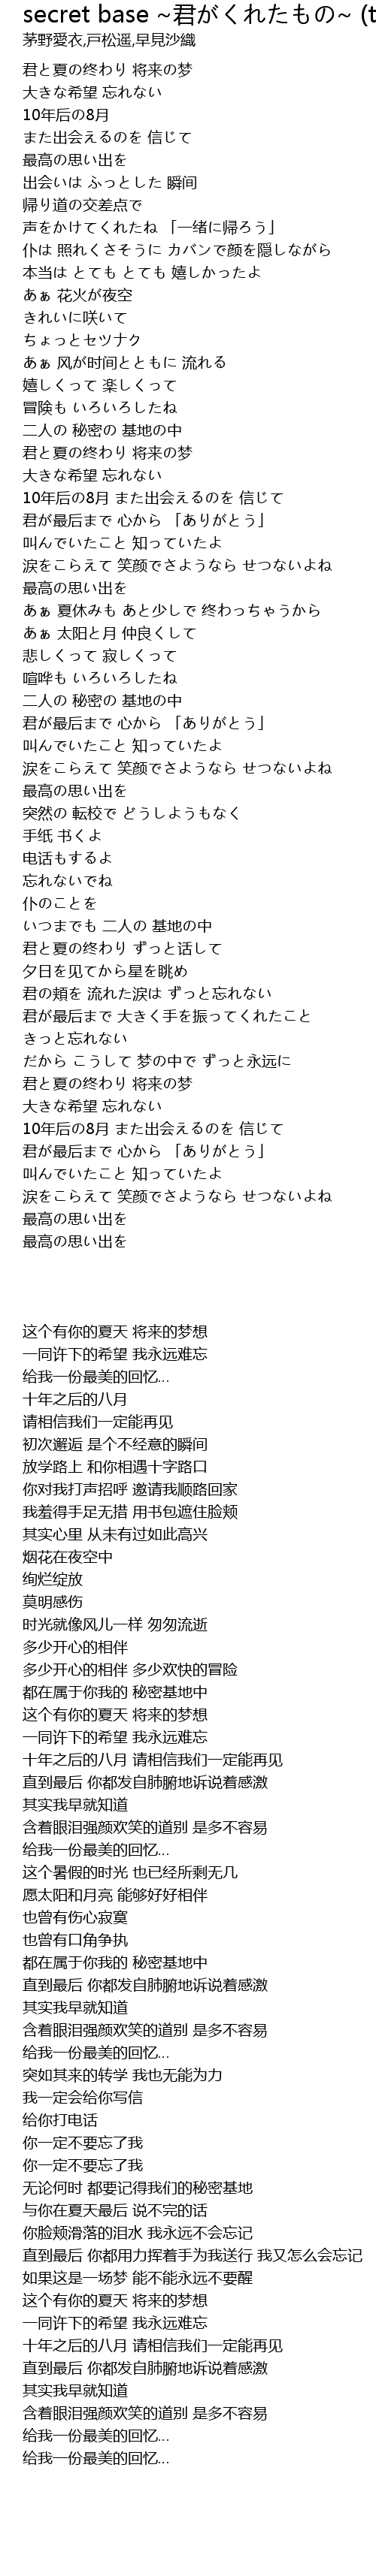 secret base ~君がくれたもの~ (those dizzy days Ver.) secret base jun those dizzy days Ver. Lyrics